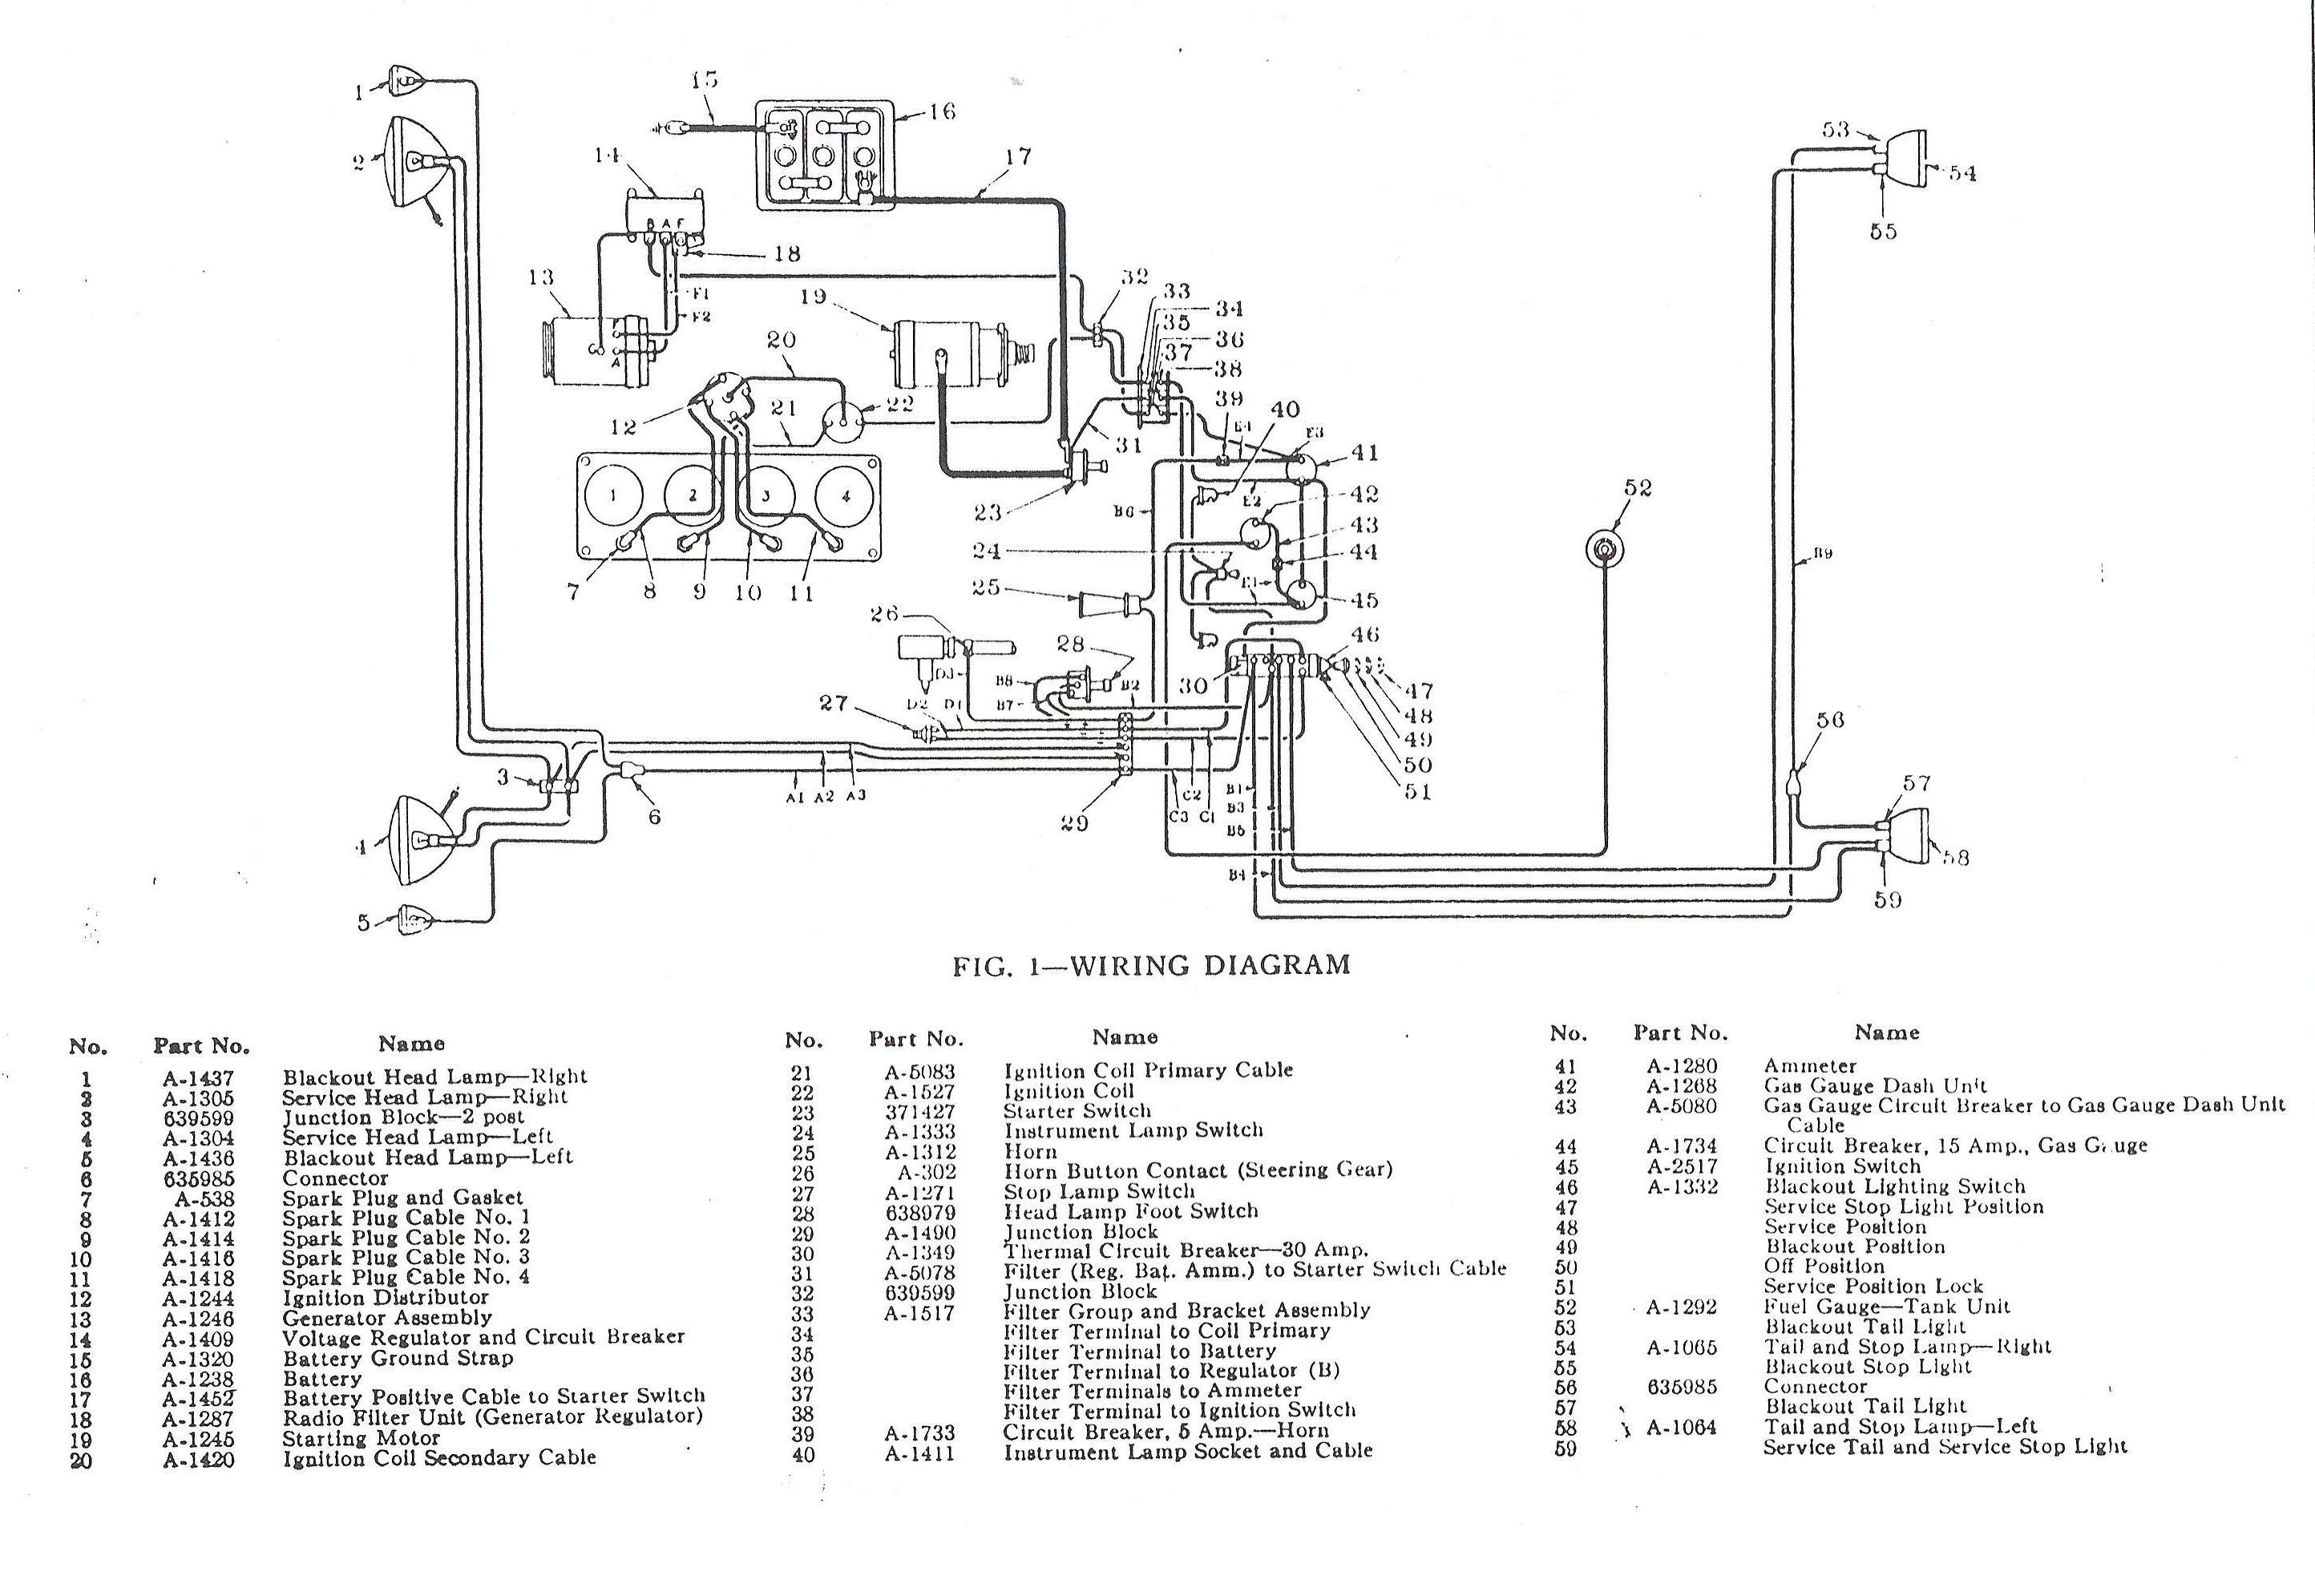 1949 Willys Jeep Wiring Diagram - Wiring Diagram Replace table-symbol -  table-symbol.miramontiseo.it | Willys Mb Wiring Diagram |  | table-symbol.miramontiseo.it